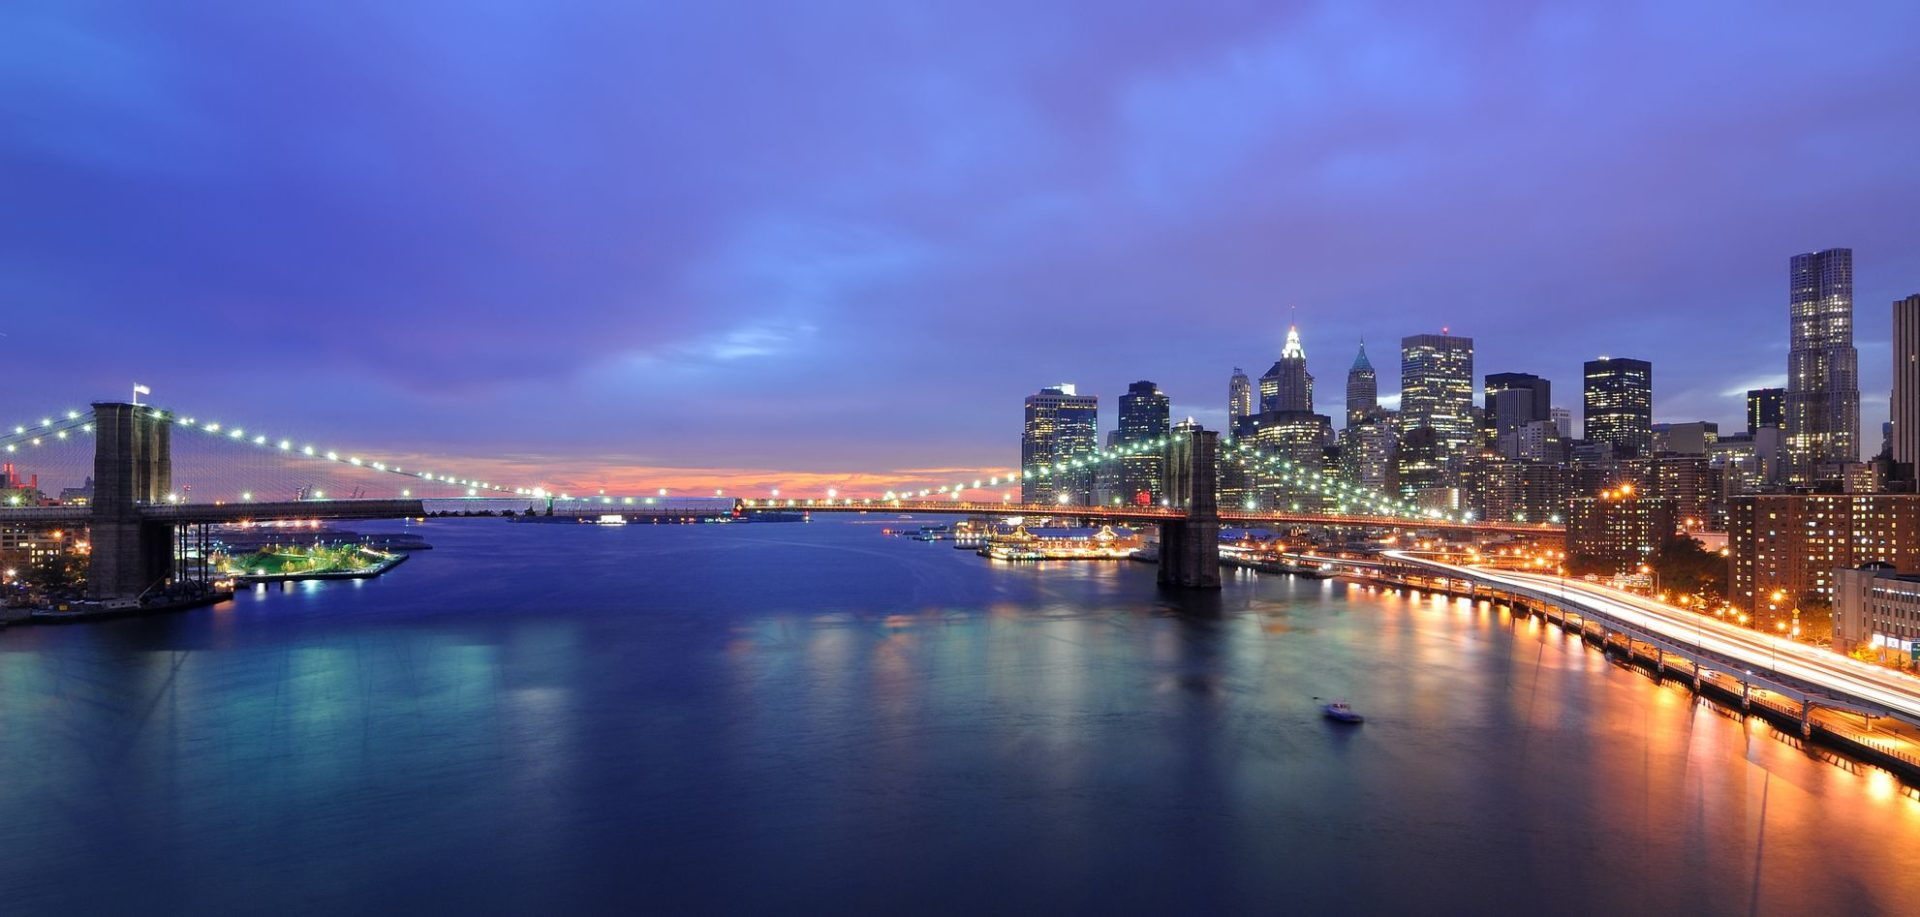 Skyline of Manhattan and Brooklyn Bridge